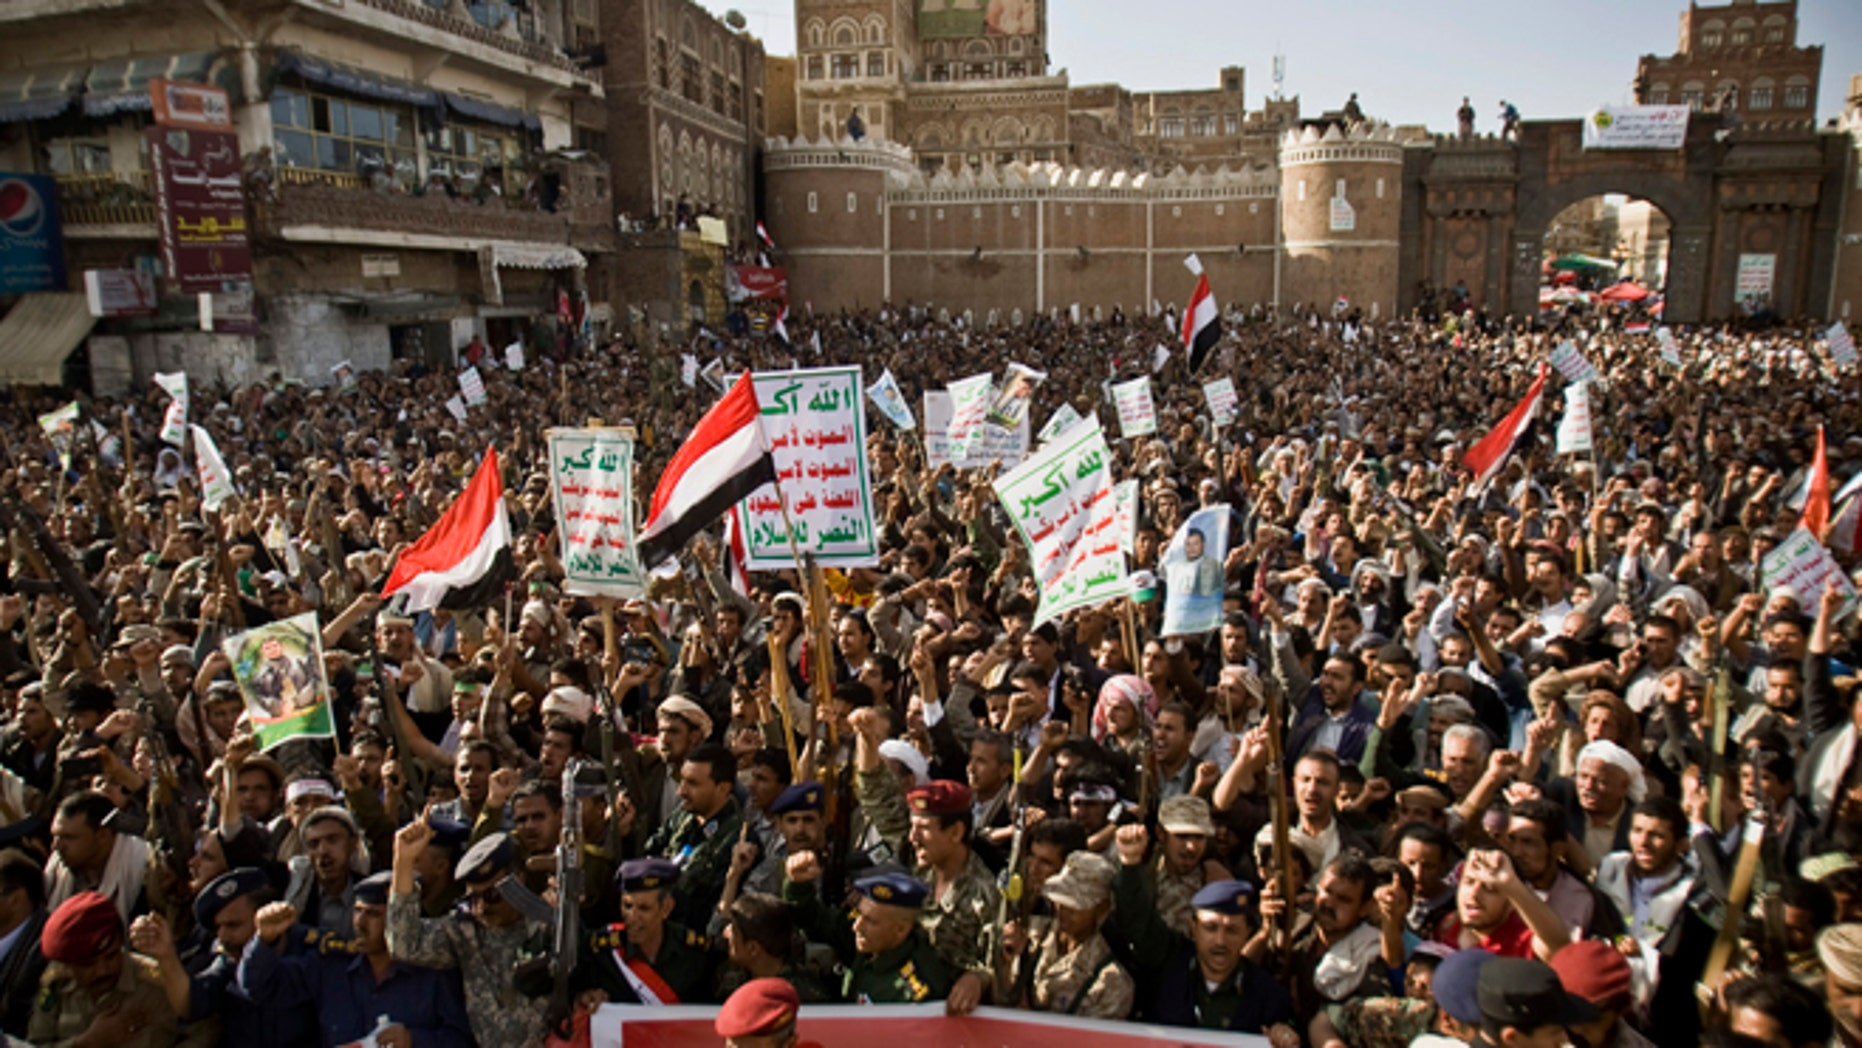 April 1, 2015: Shiite rebels, known as Houthis, chant slogans to protest against Saudi-led airstrikes, during a rally in Sanaa, Yemen. Saudi-led coalition warplanes bombed Shiite rebel positions in both north and south Yemen early Wednesday, setting off explosions and drawing return fire from anti-aircraft guns.